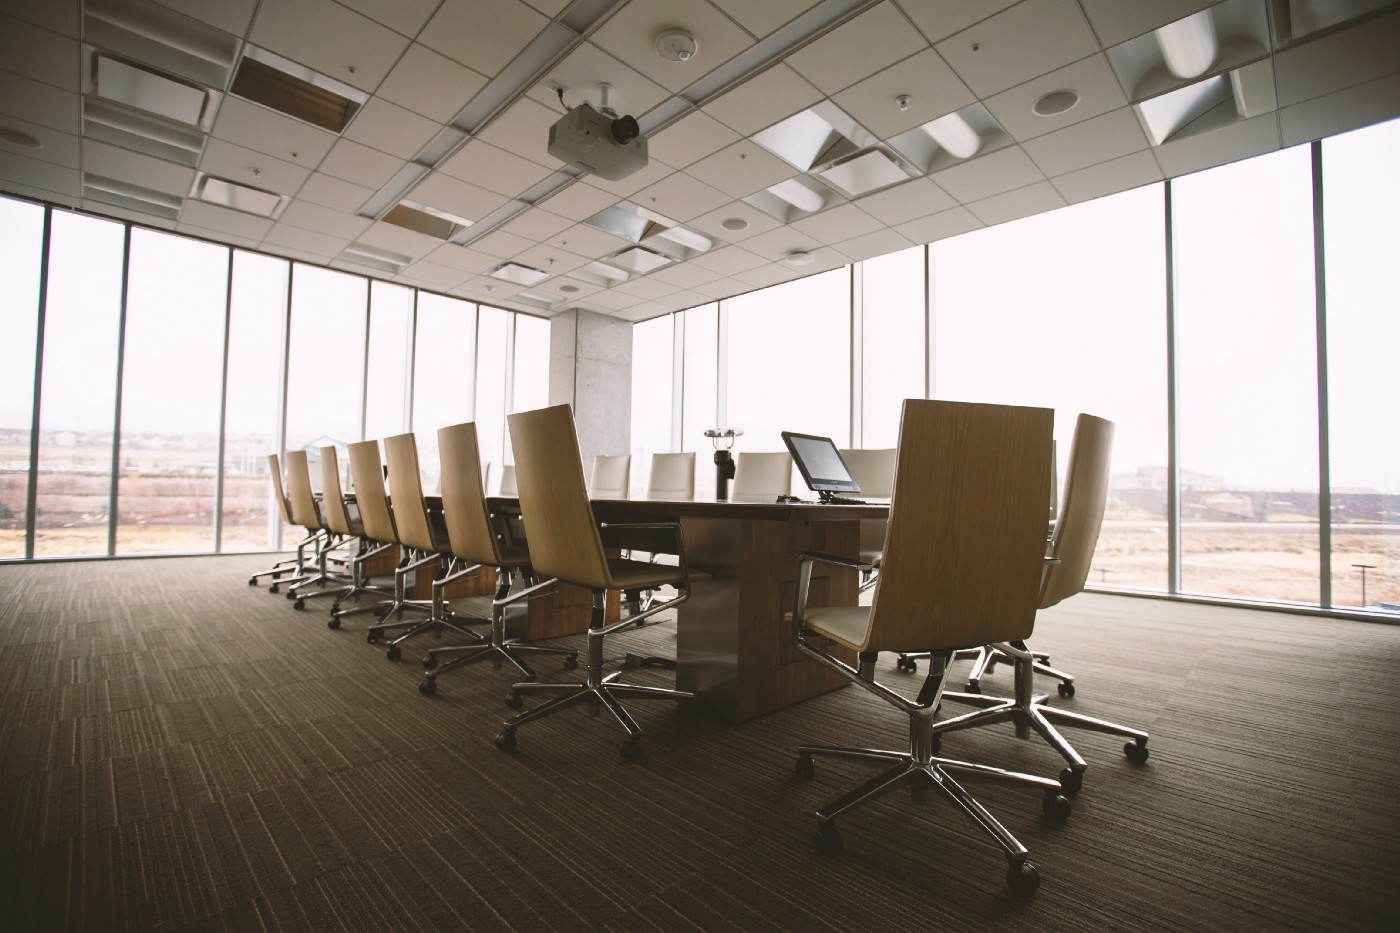 Conference room with floor to ceiling windows, table, and chairs